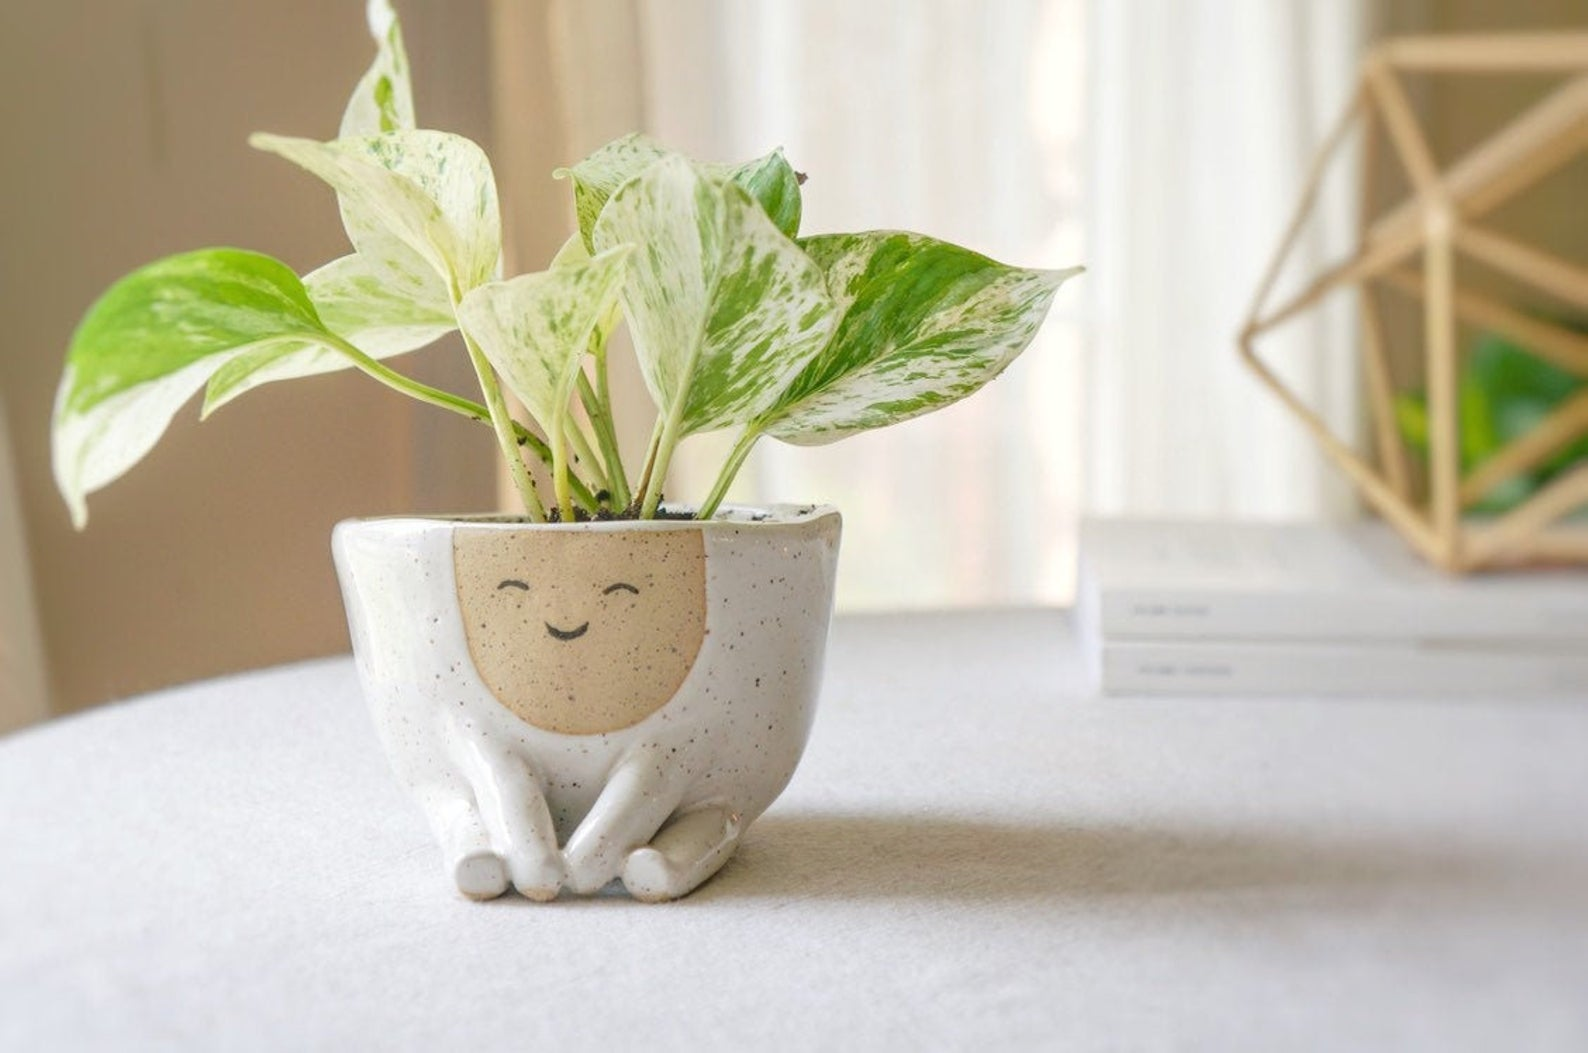 Home office gifts for mom: A fun planter for her desk, like this one at Ceramic Sense